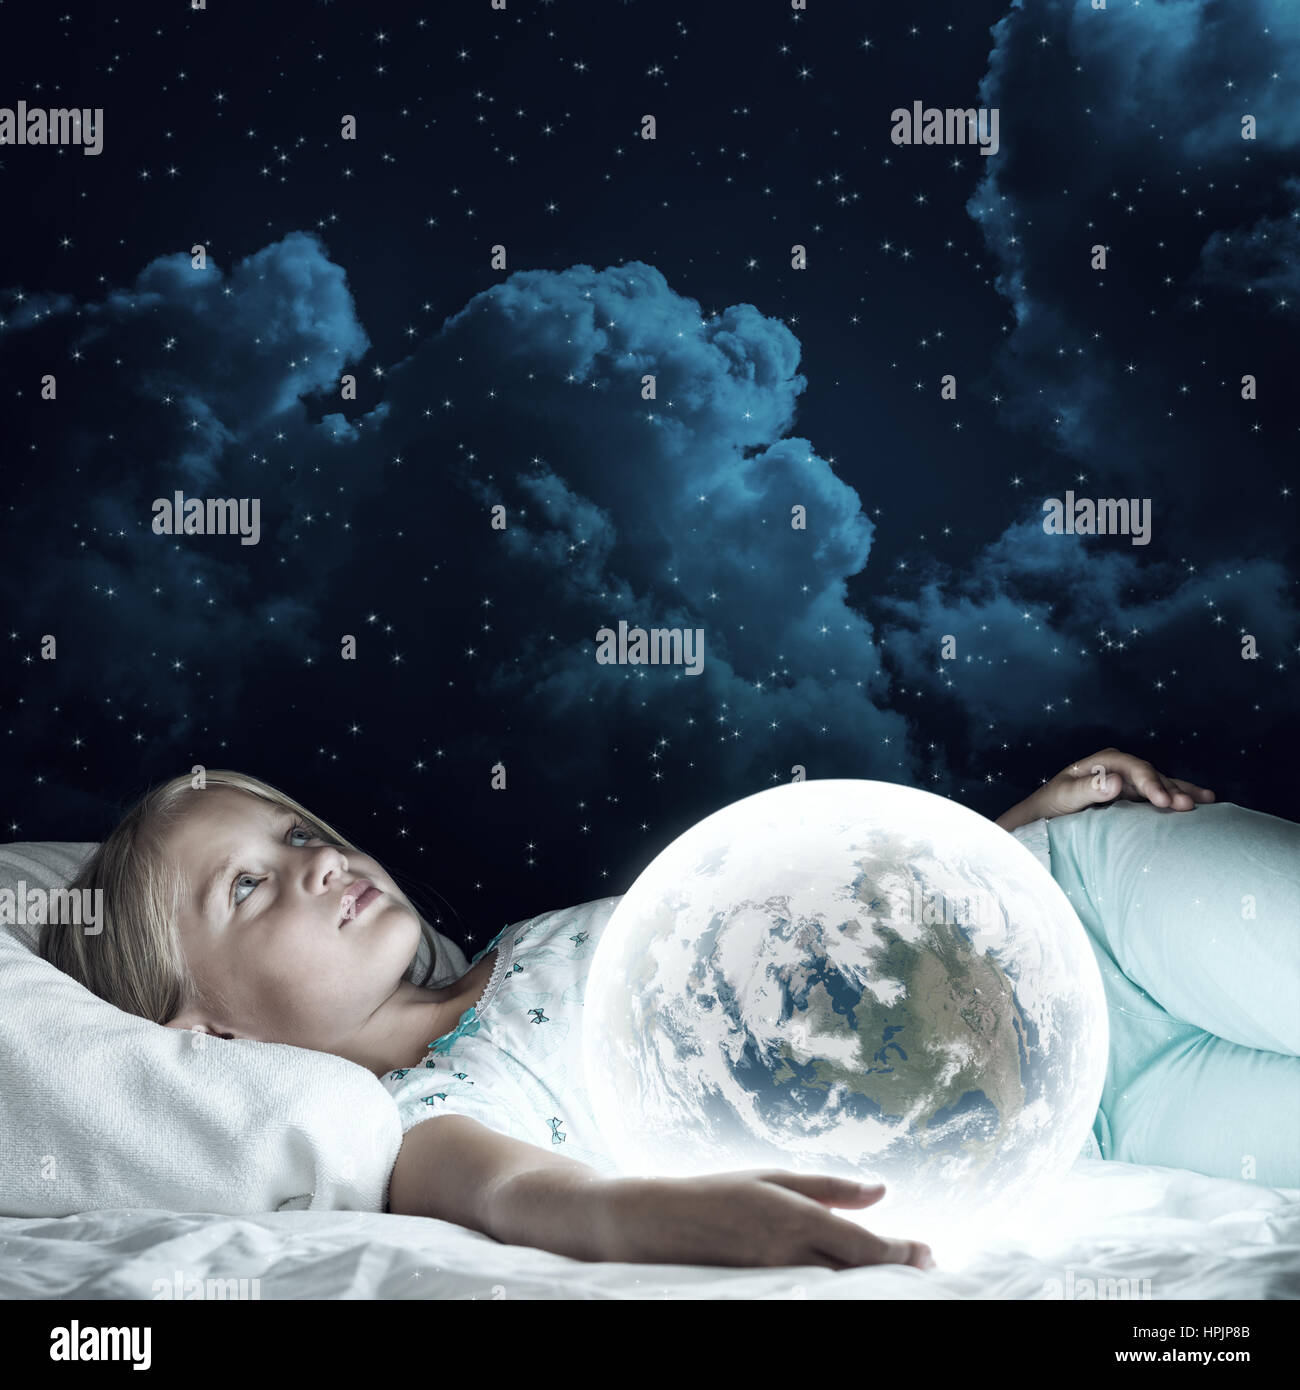 Girl in her bed and glowing globe - Stock Image